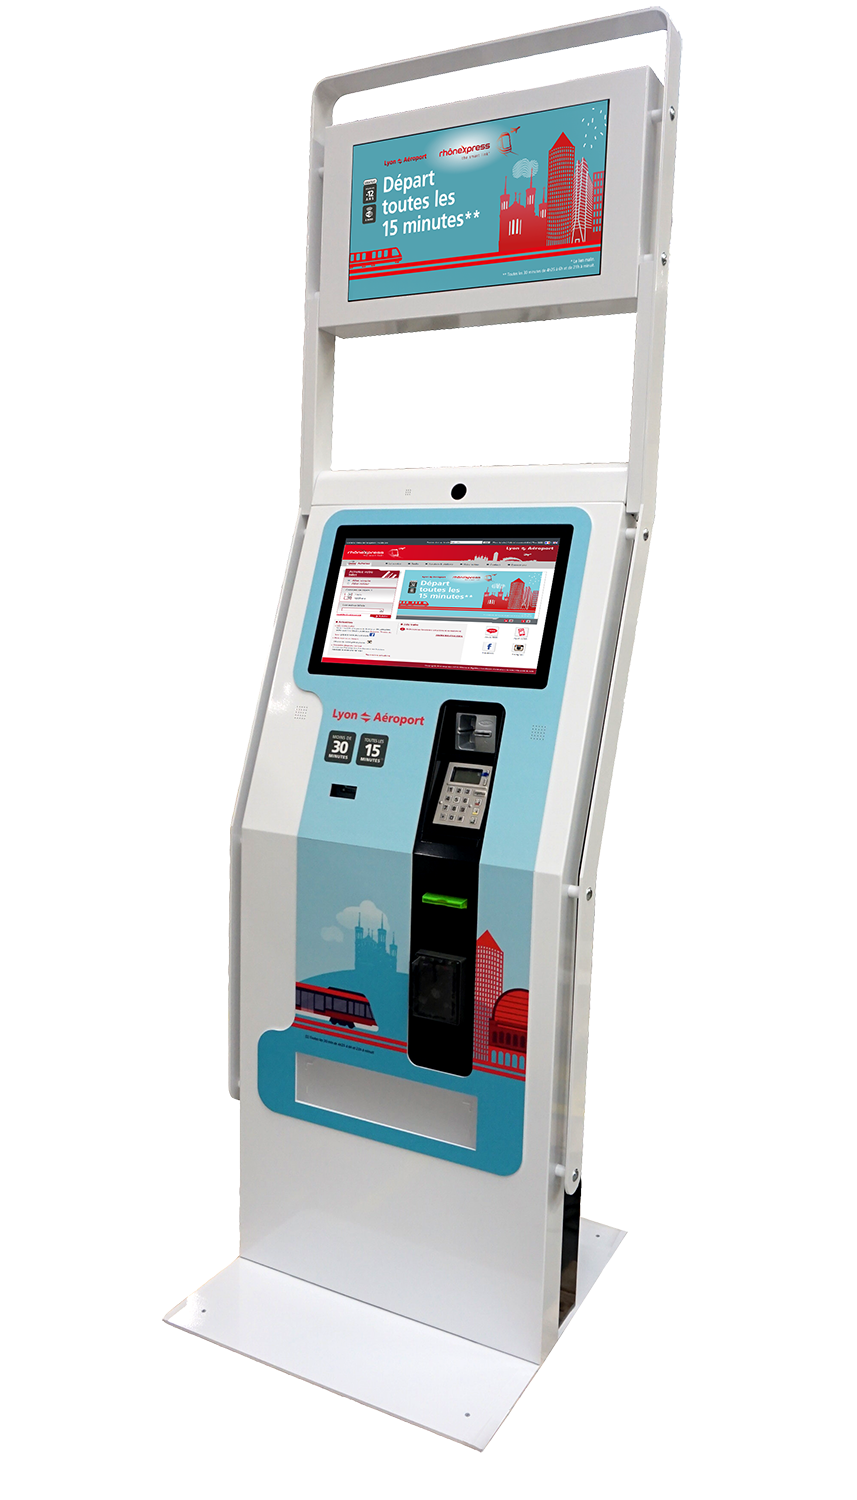 borne ticket vending machin - distribution ticket - paiement securise - rhonexpress